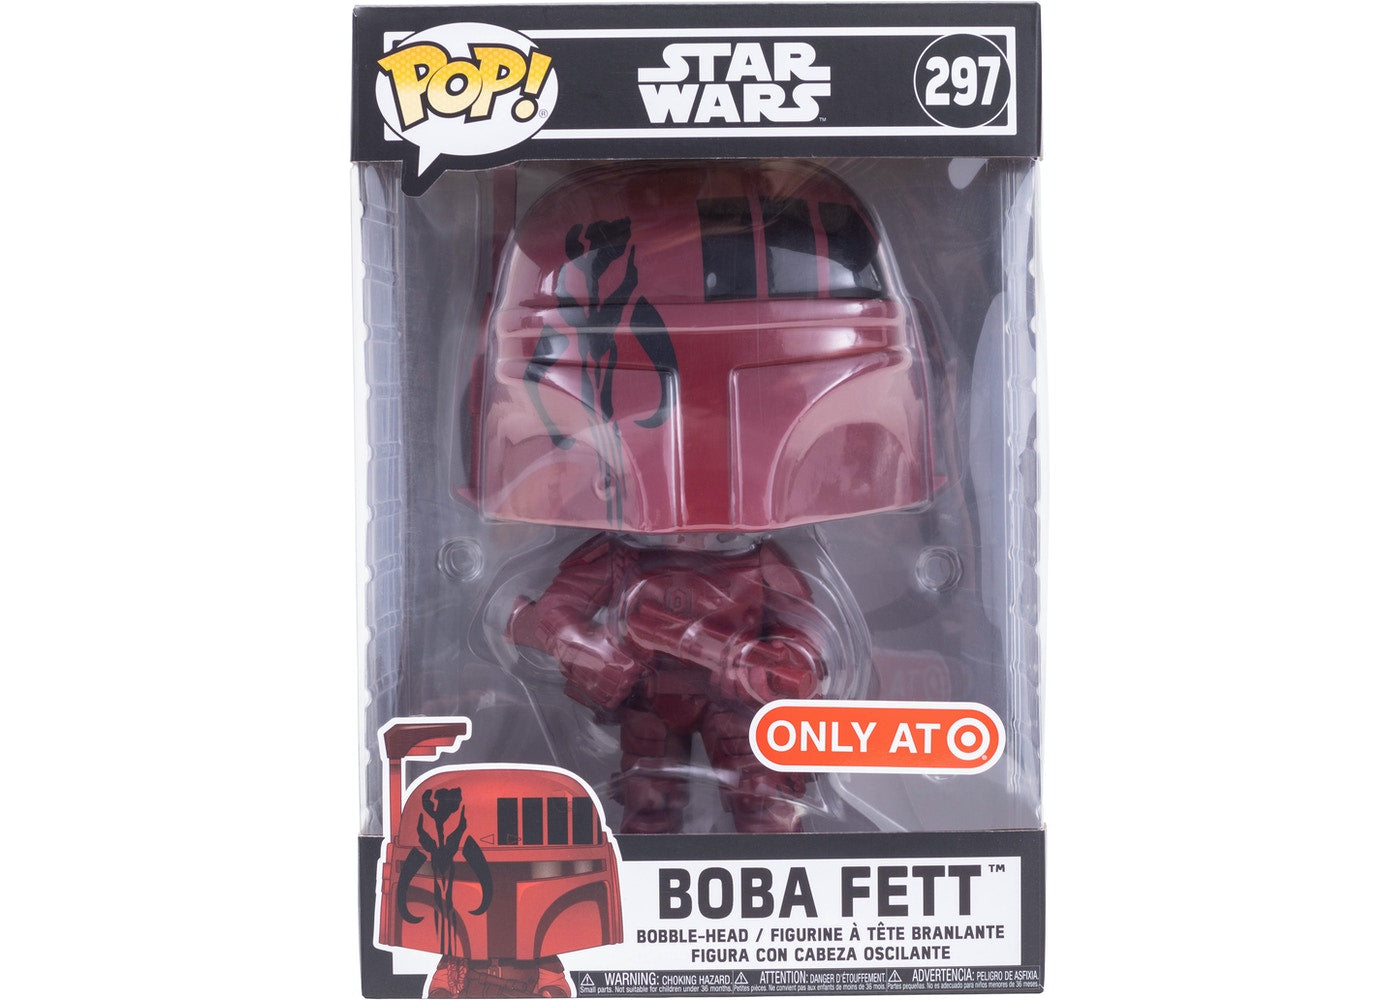 Pop! Star Wars Boba Fett #297 (Target Exclusive) | SKYFOX GAMES